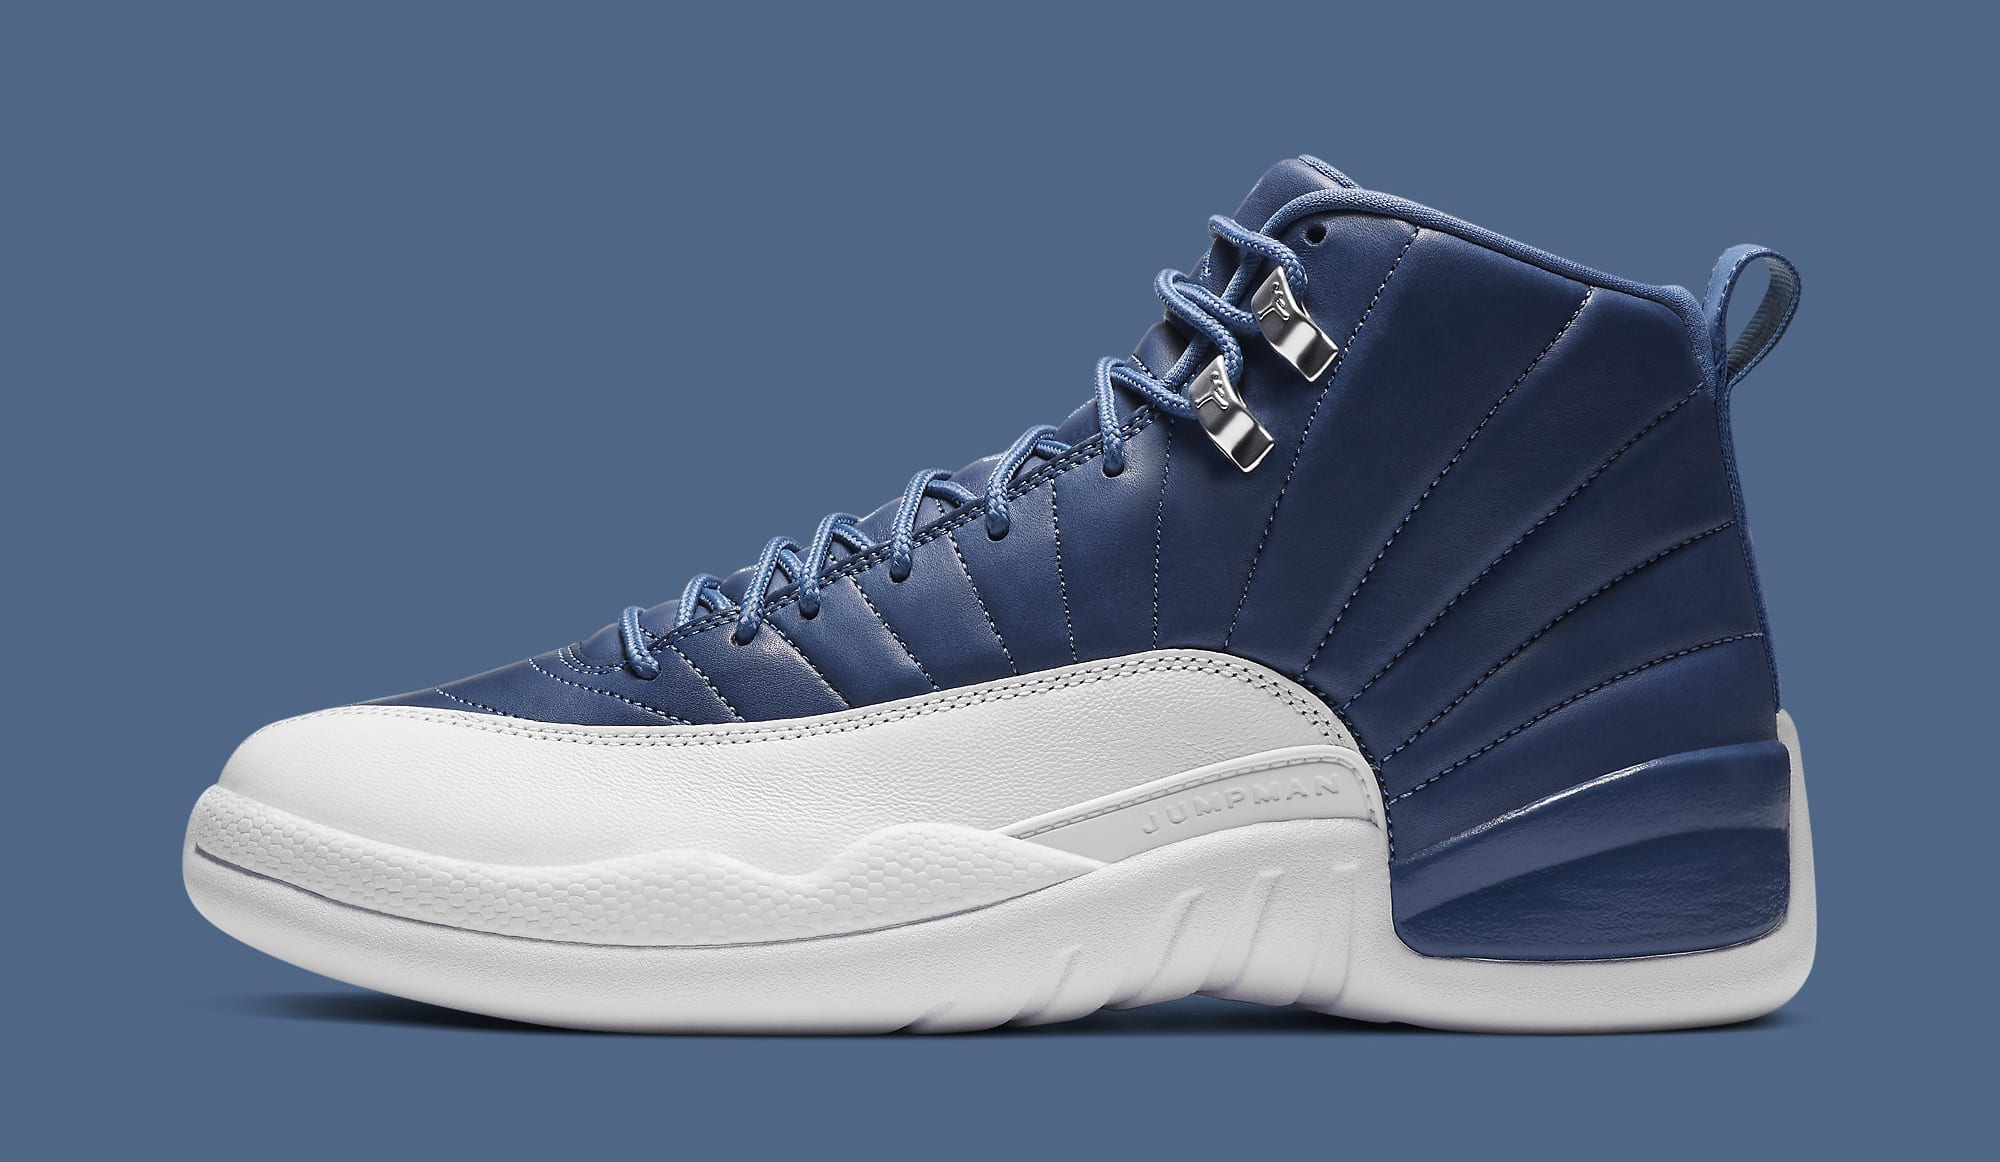 Air Jordan 12 Retro 'Indigo' 130690-404 Lateral